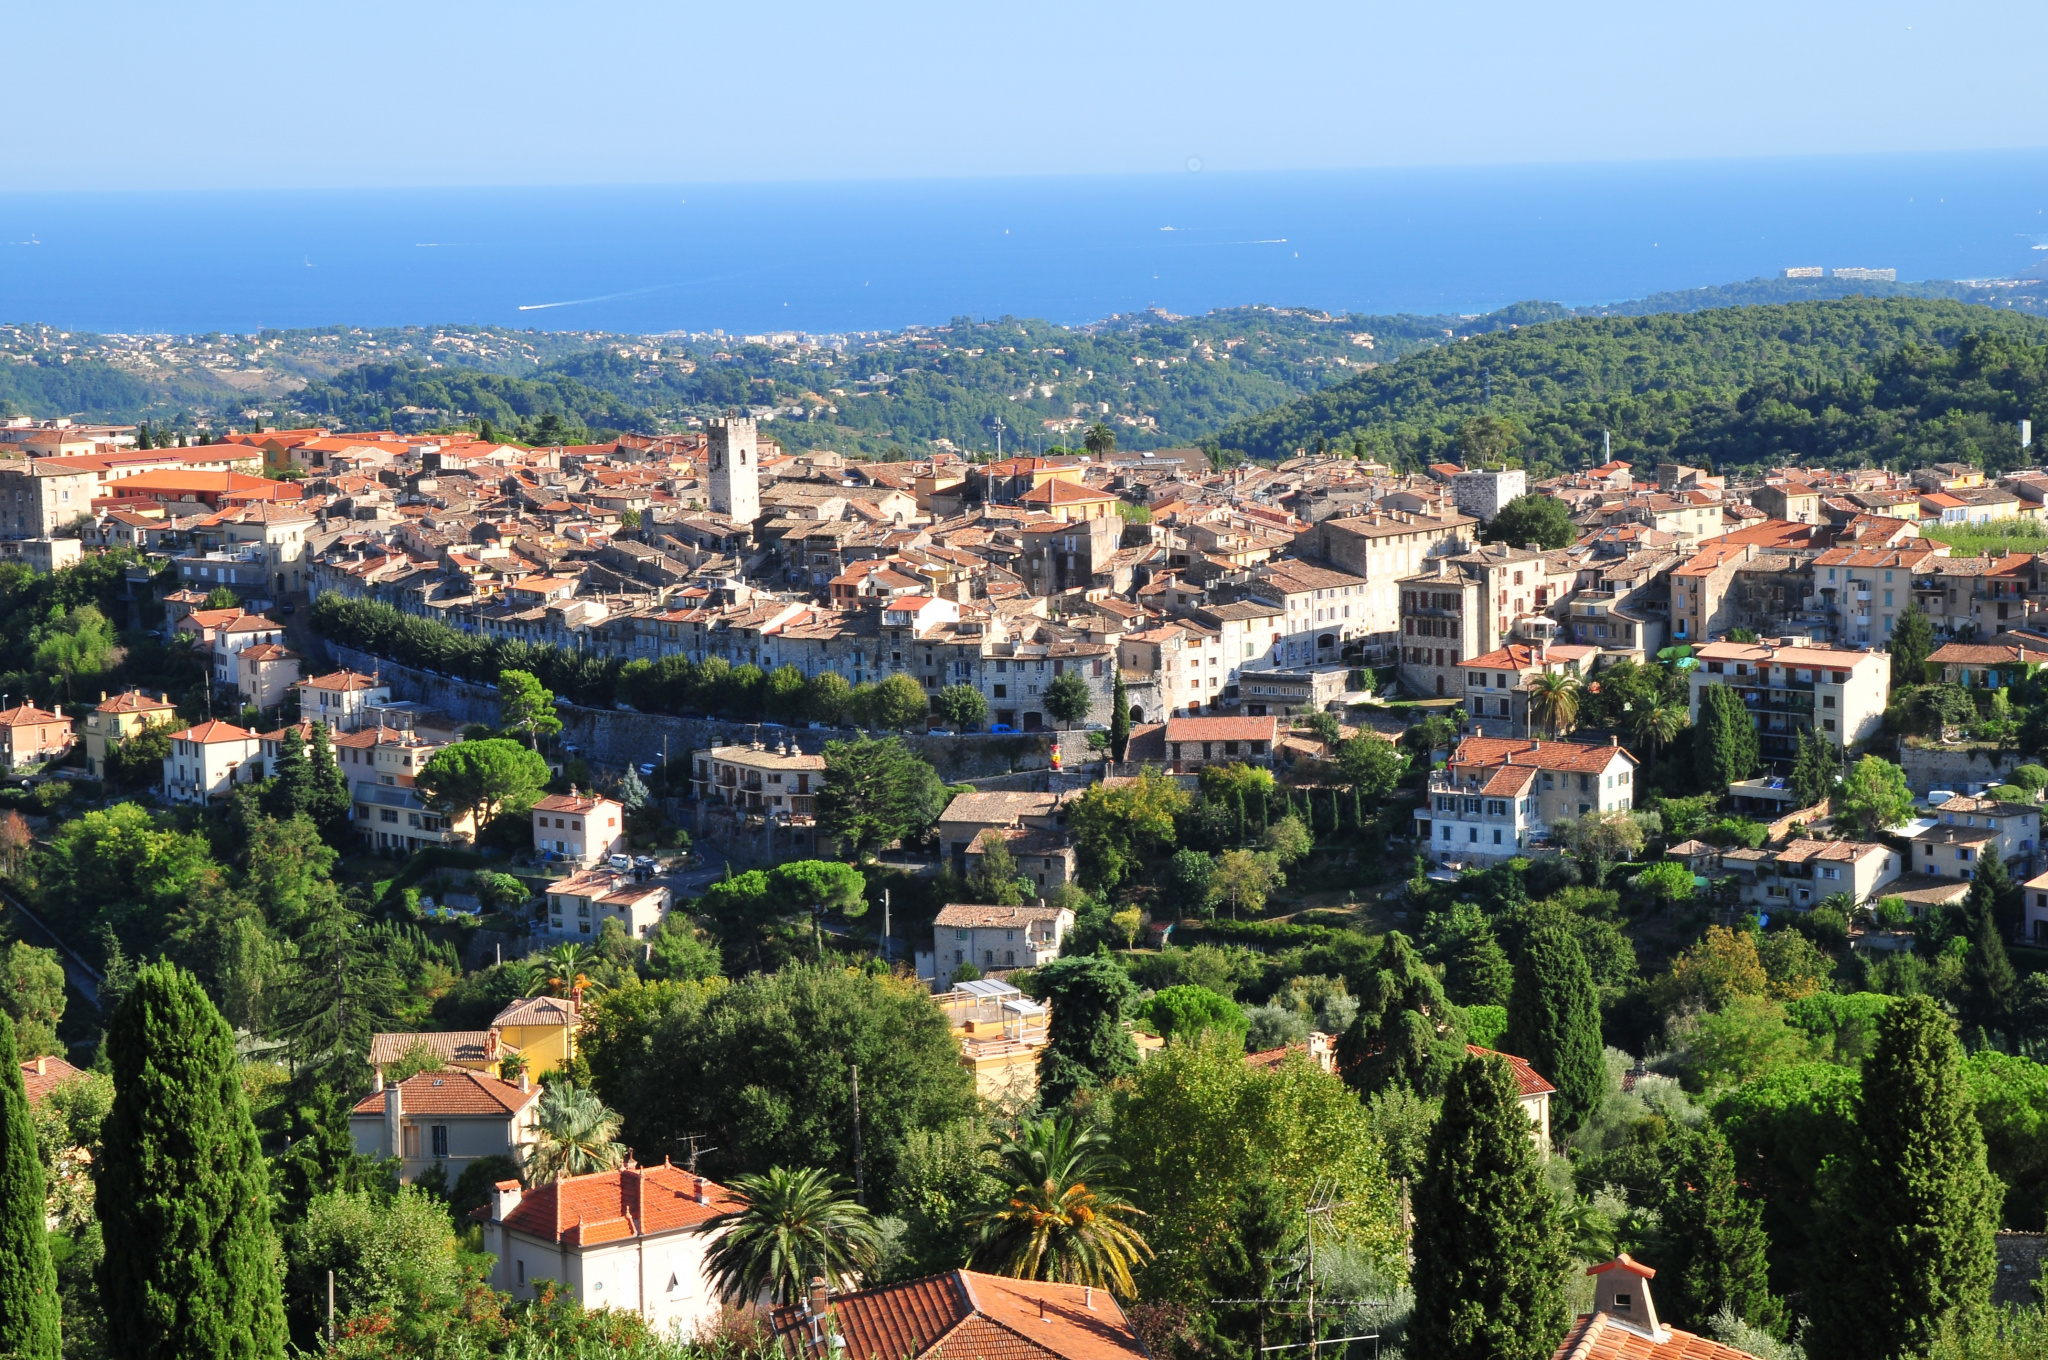 VENCE - NEAR THE CENTER - PANORAMIC VIEW